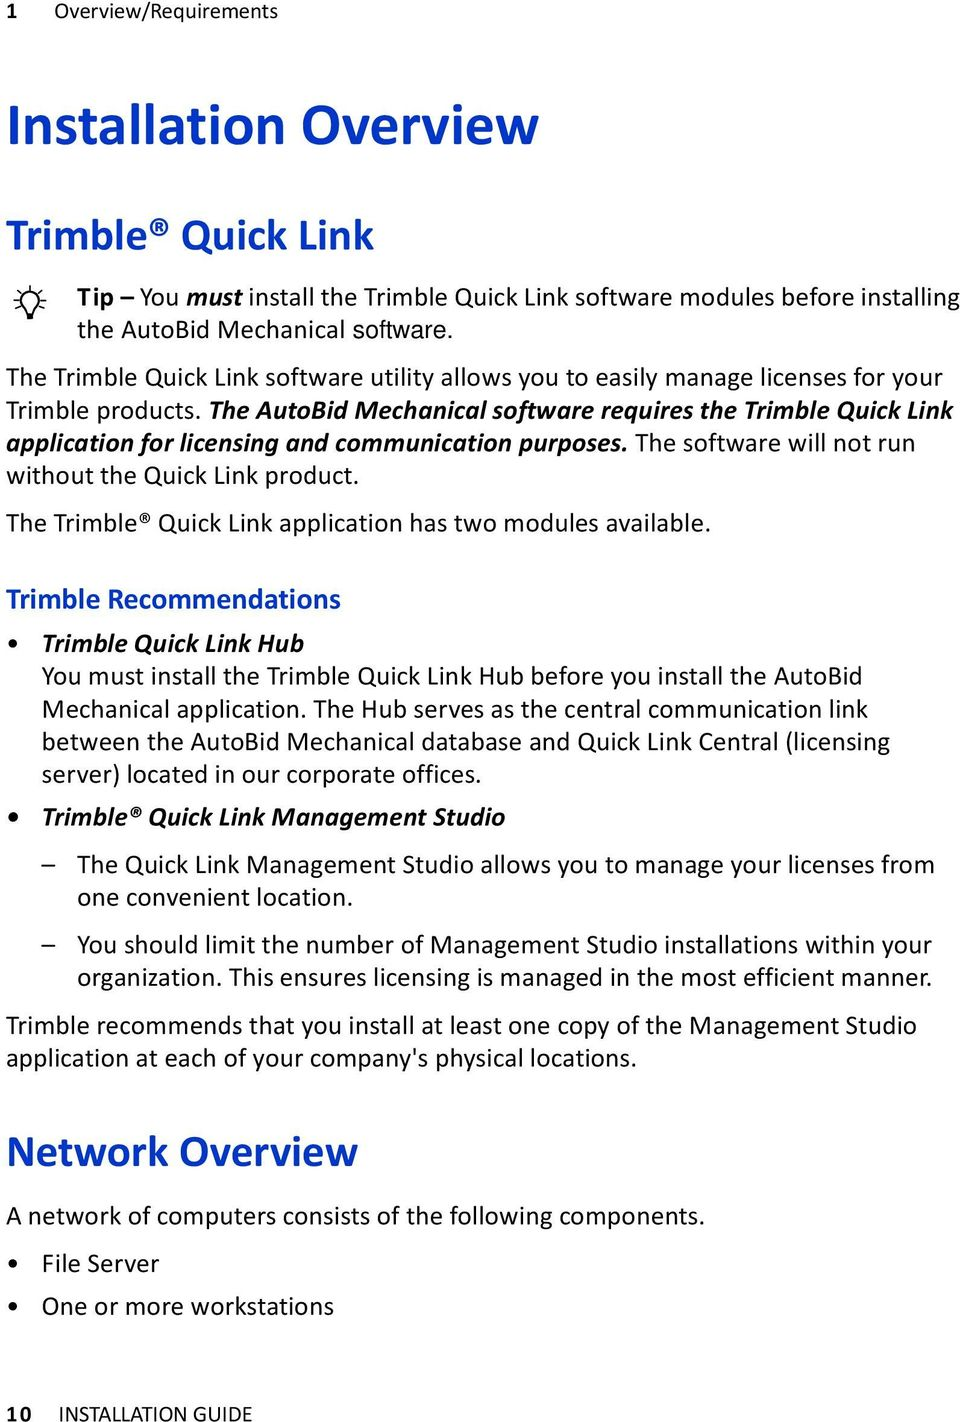 The AutoBid Mechanical software requires the Trimble Quick Link application for licensing and communication purposes. The software will not run without the Quick Link product.